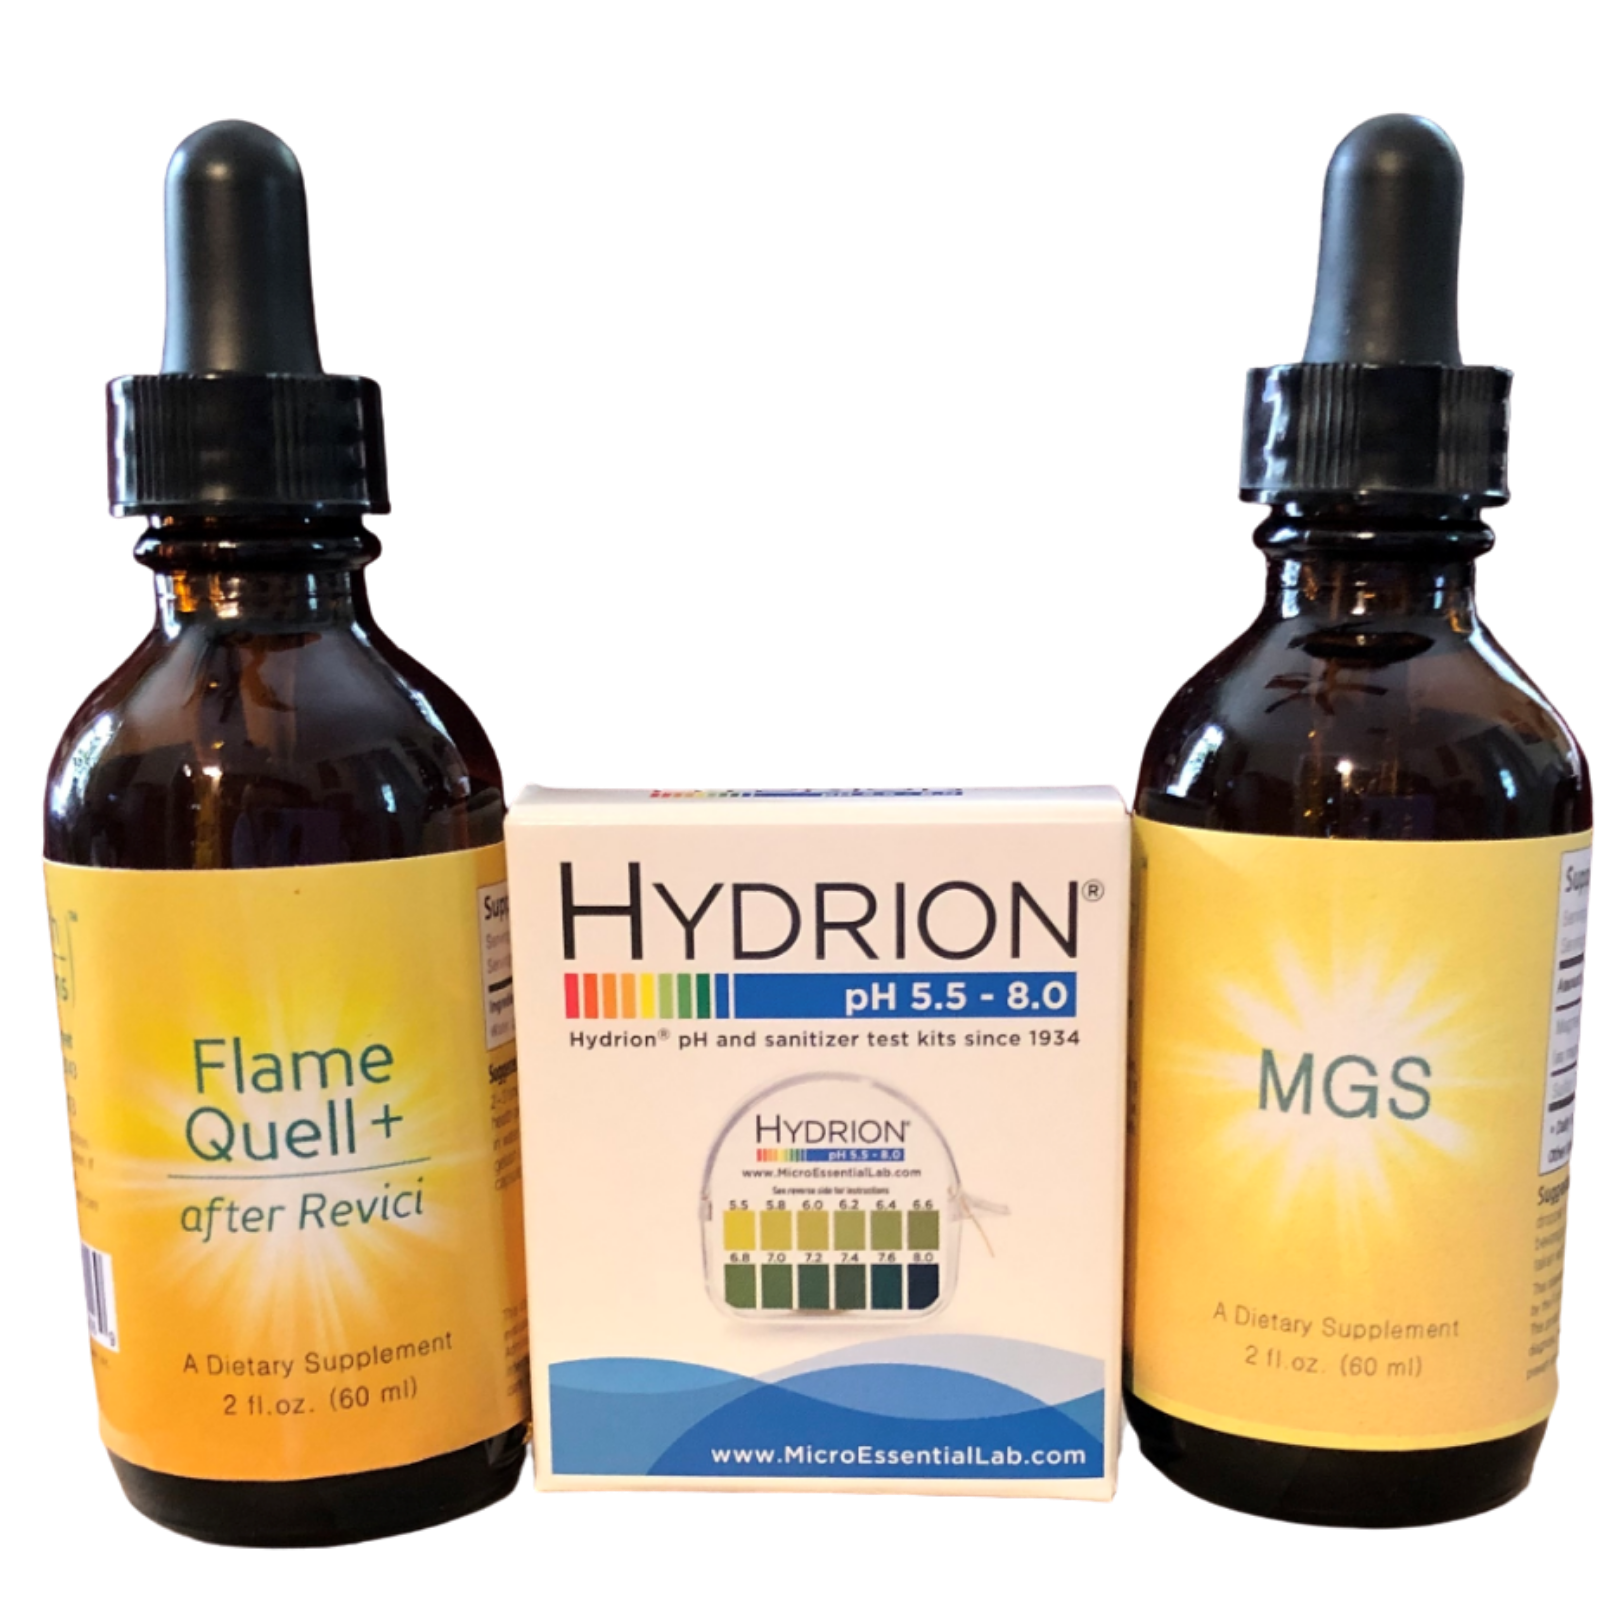 A bottle of Flame Quell+, next to a box of Hydrion pH papers, next to a bottle of MGS